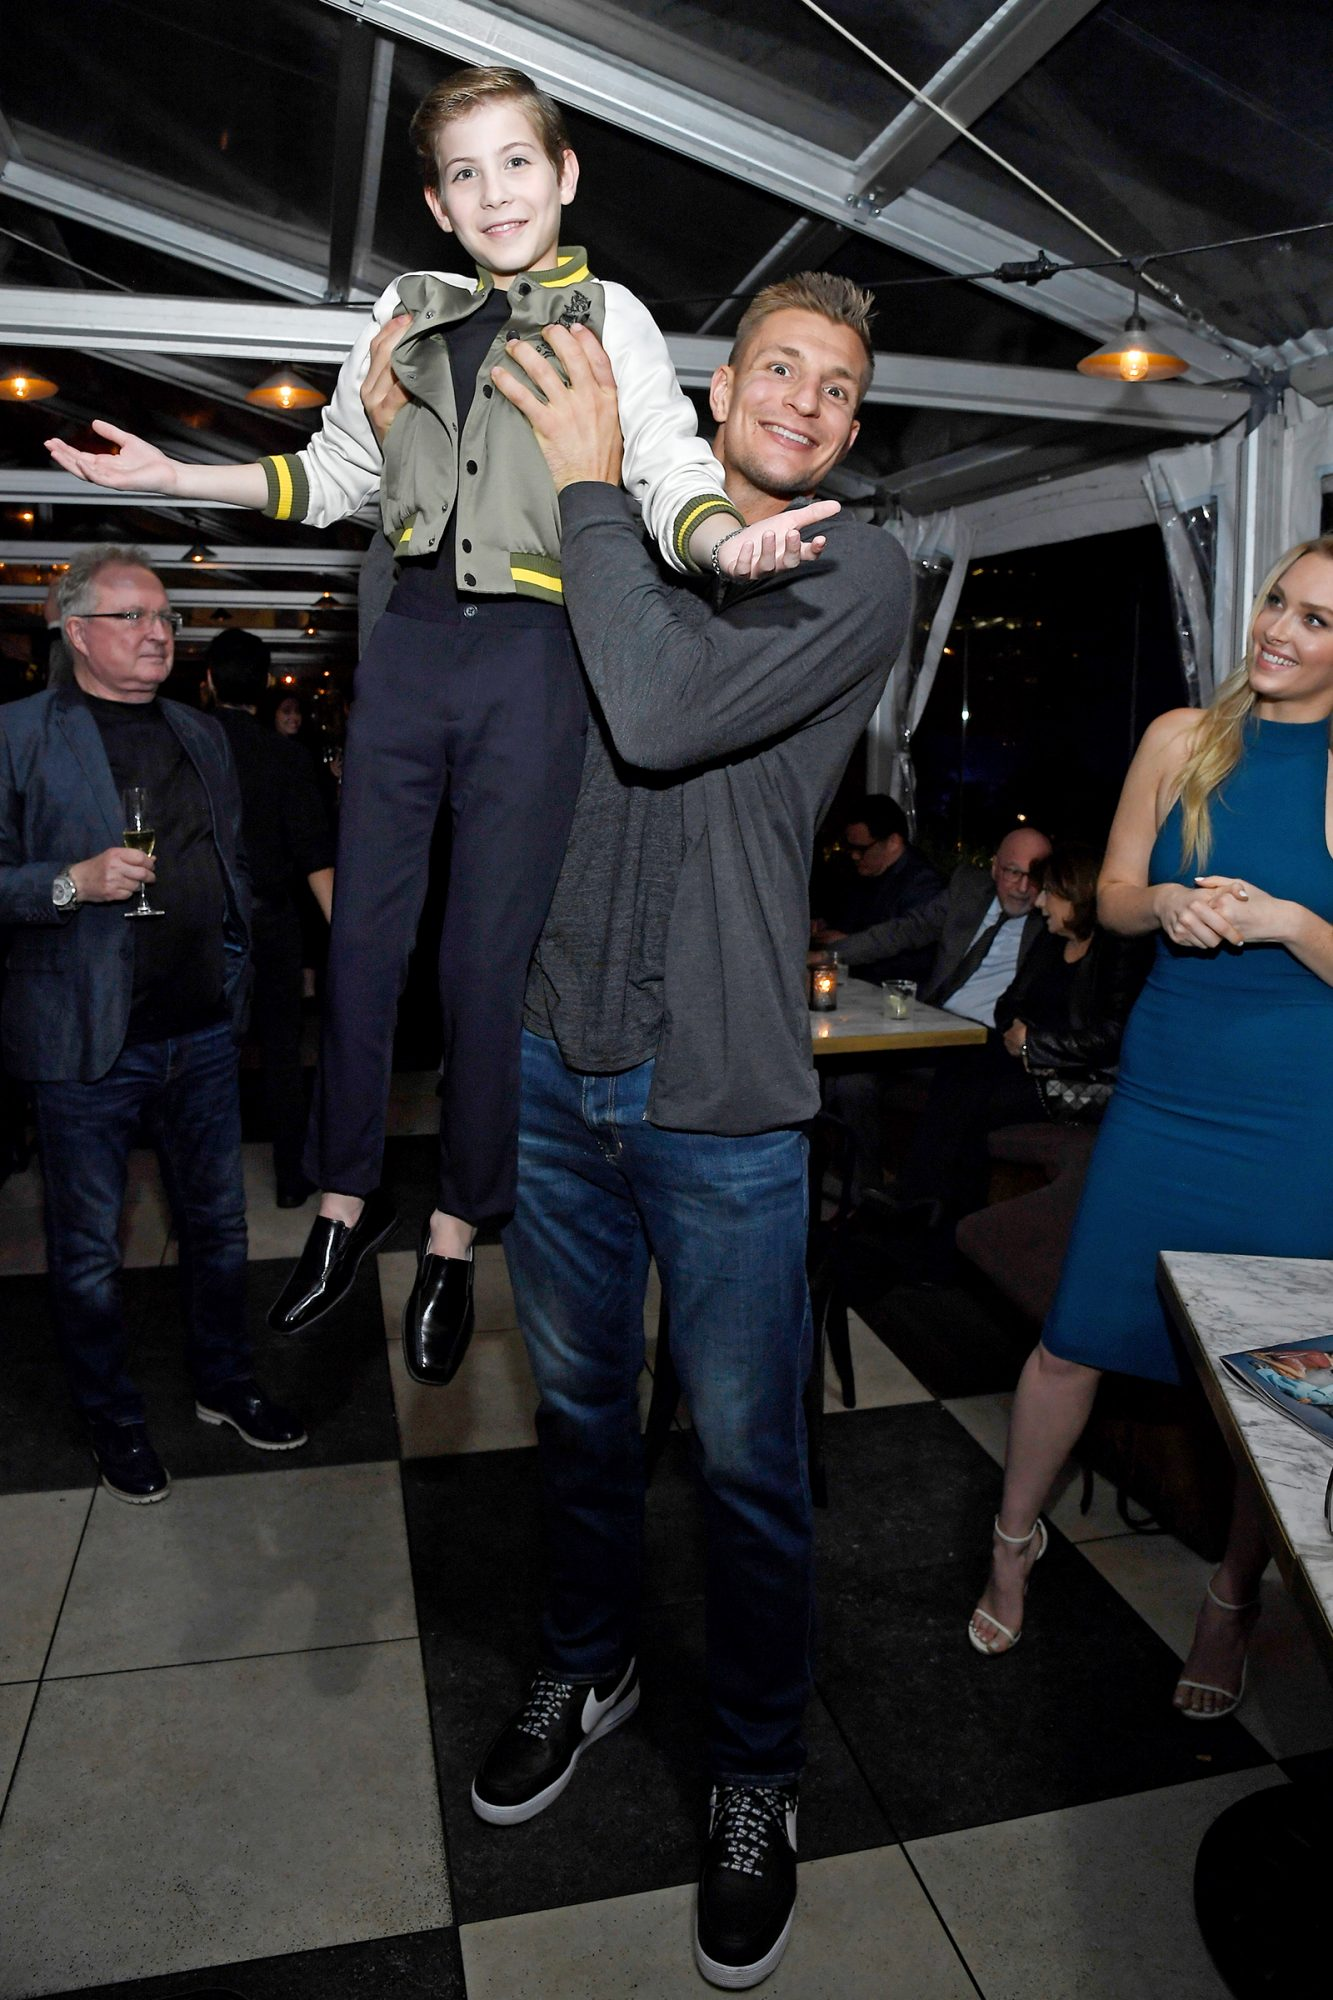 Jacob Tremblay, Rob Gronkowski and Camille Kostek attend the Hollywood Foreign Press Association and The Hollywood Reporter Celebration of the 2020 Golden Globe Awards Season and Unveiling of the Golden Globe Ambassadors at Catch on November 14, 2019 in West Hollywood, California